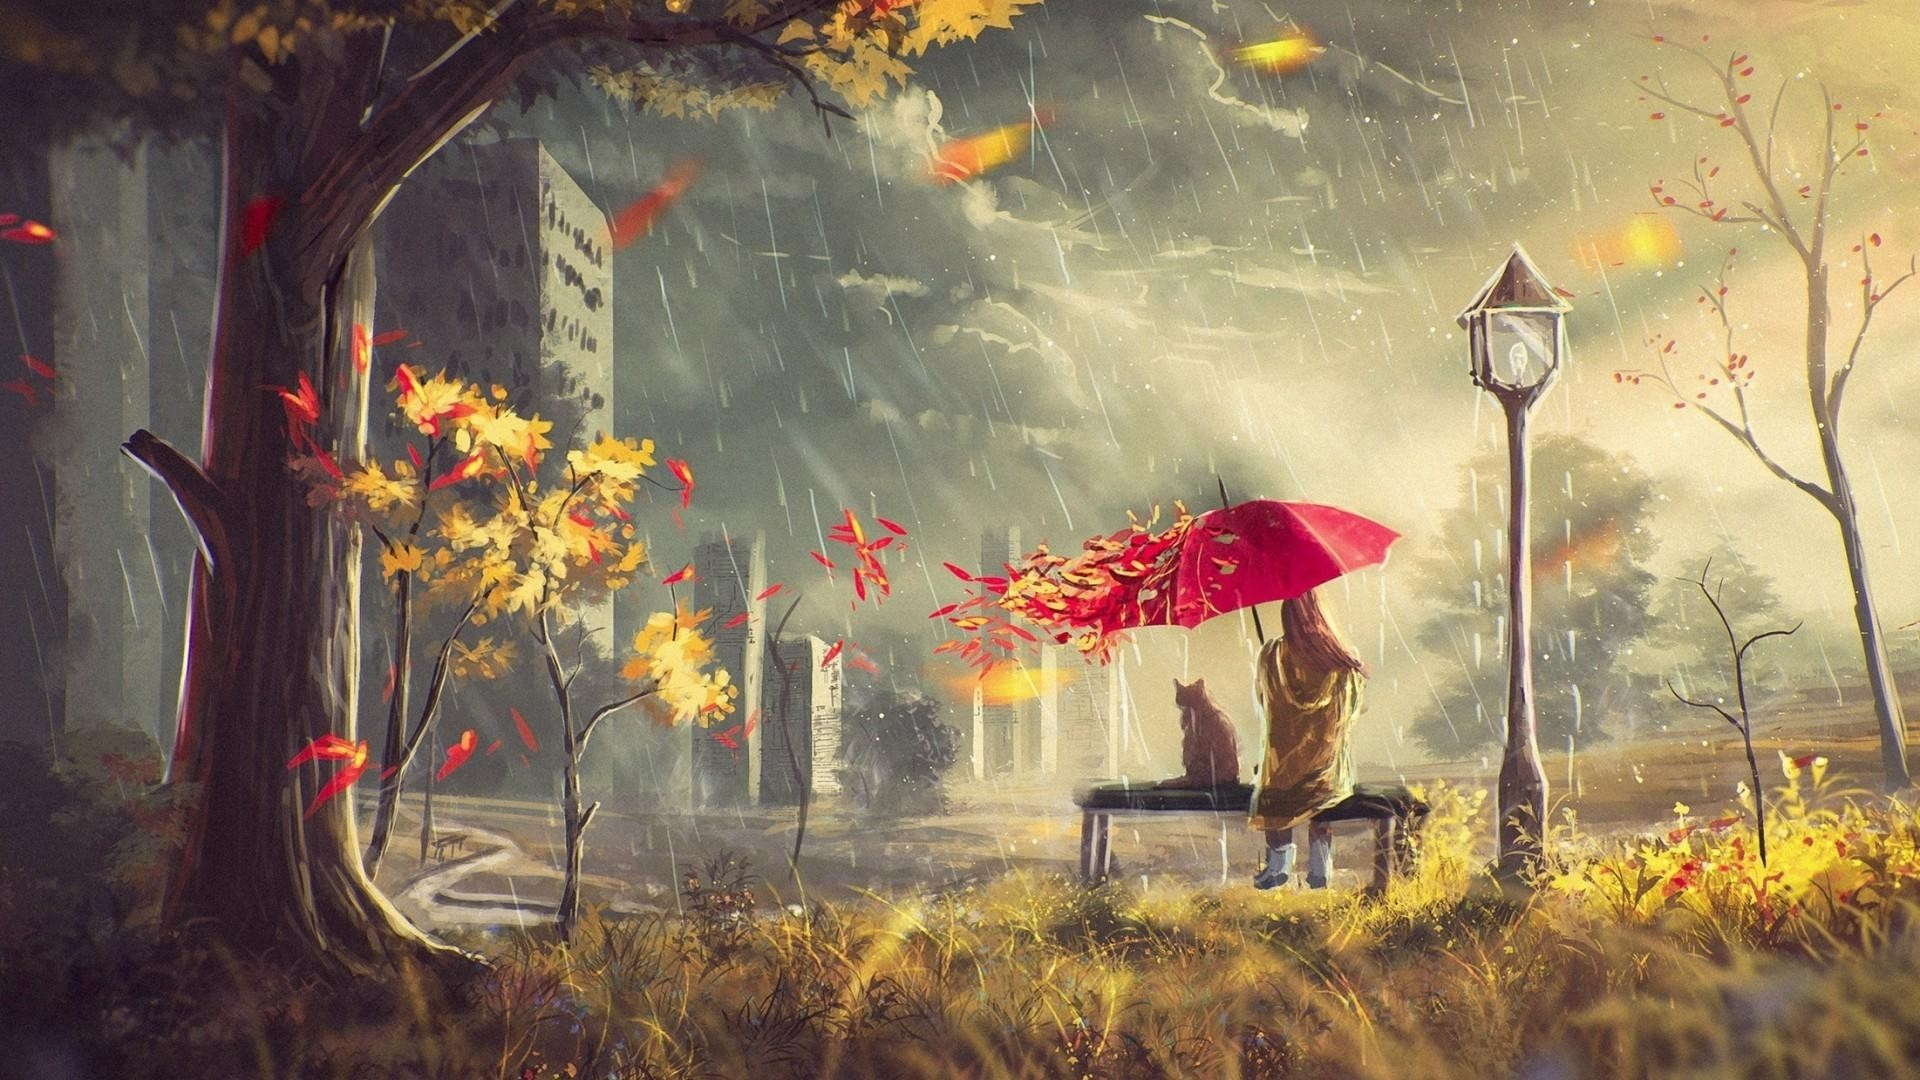 Rain Art Wallpaper theme